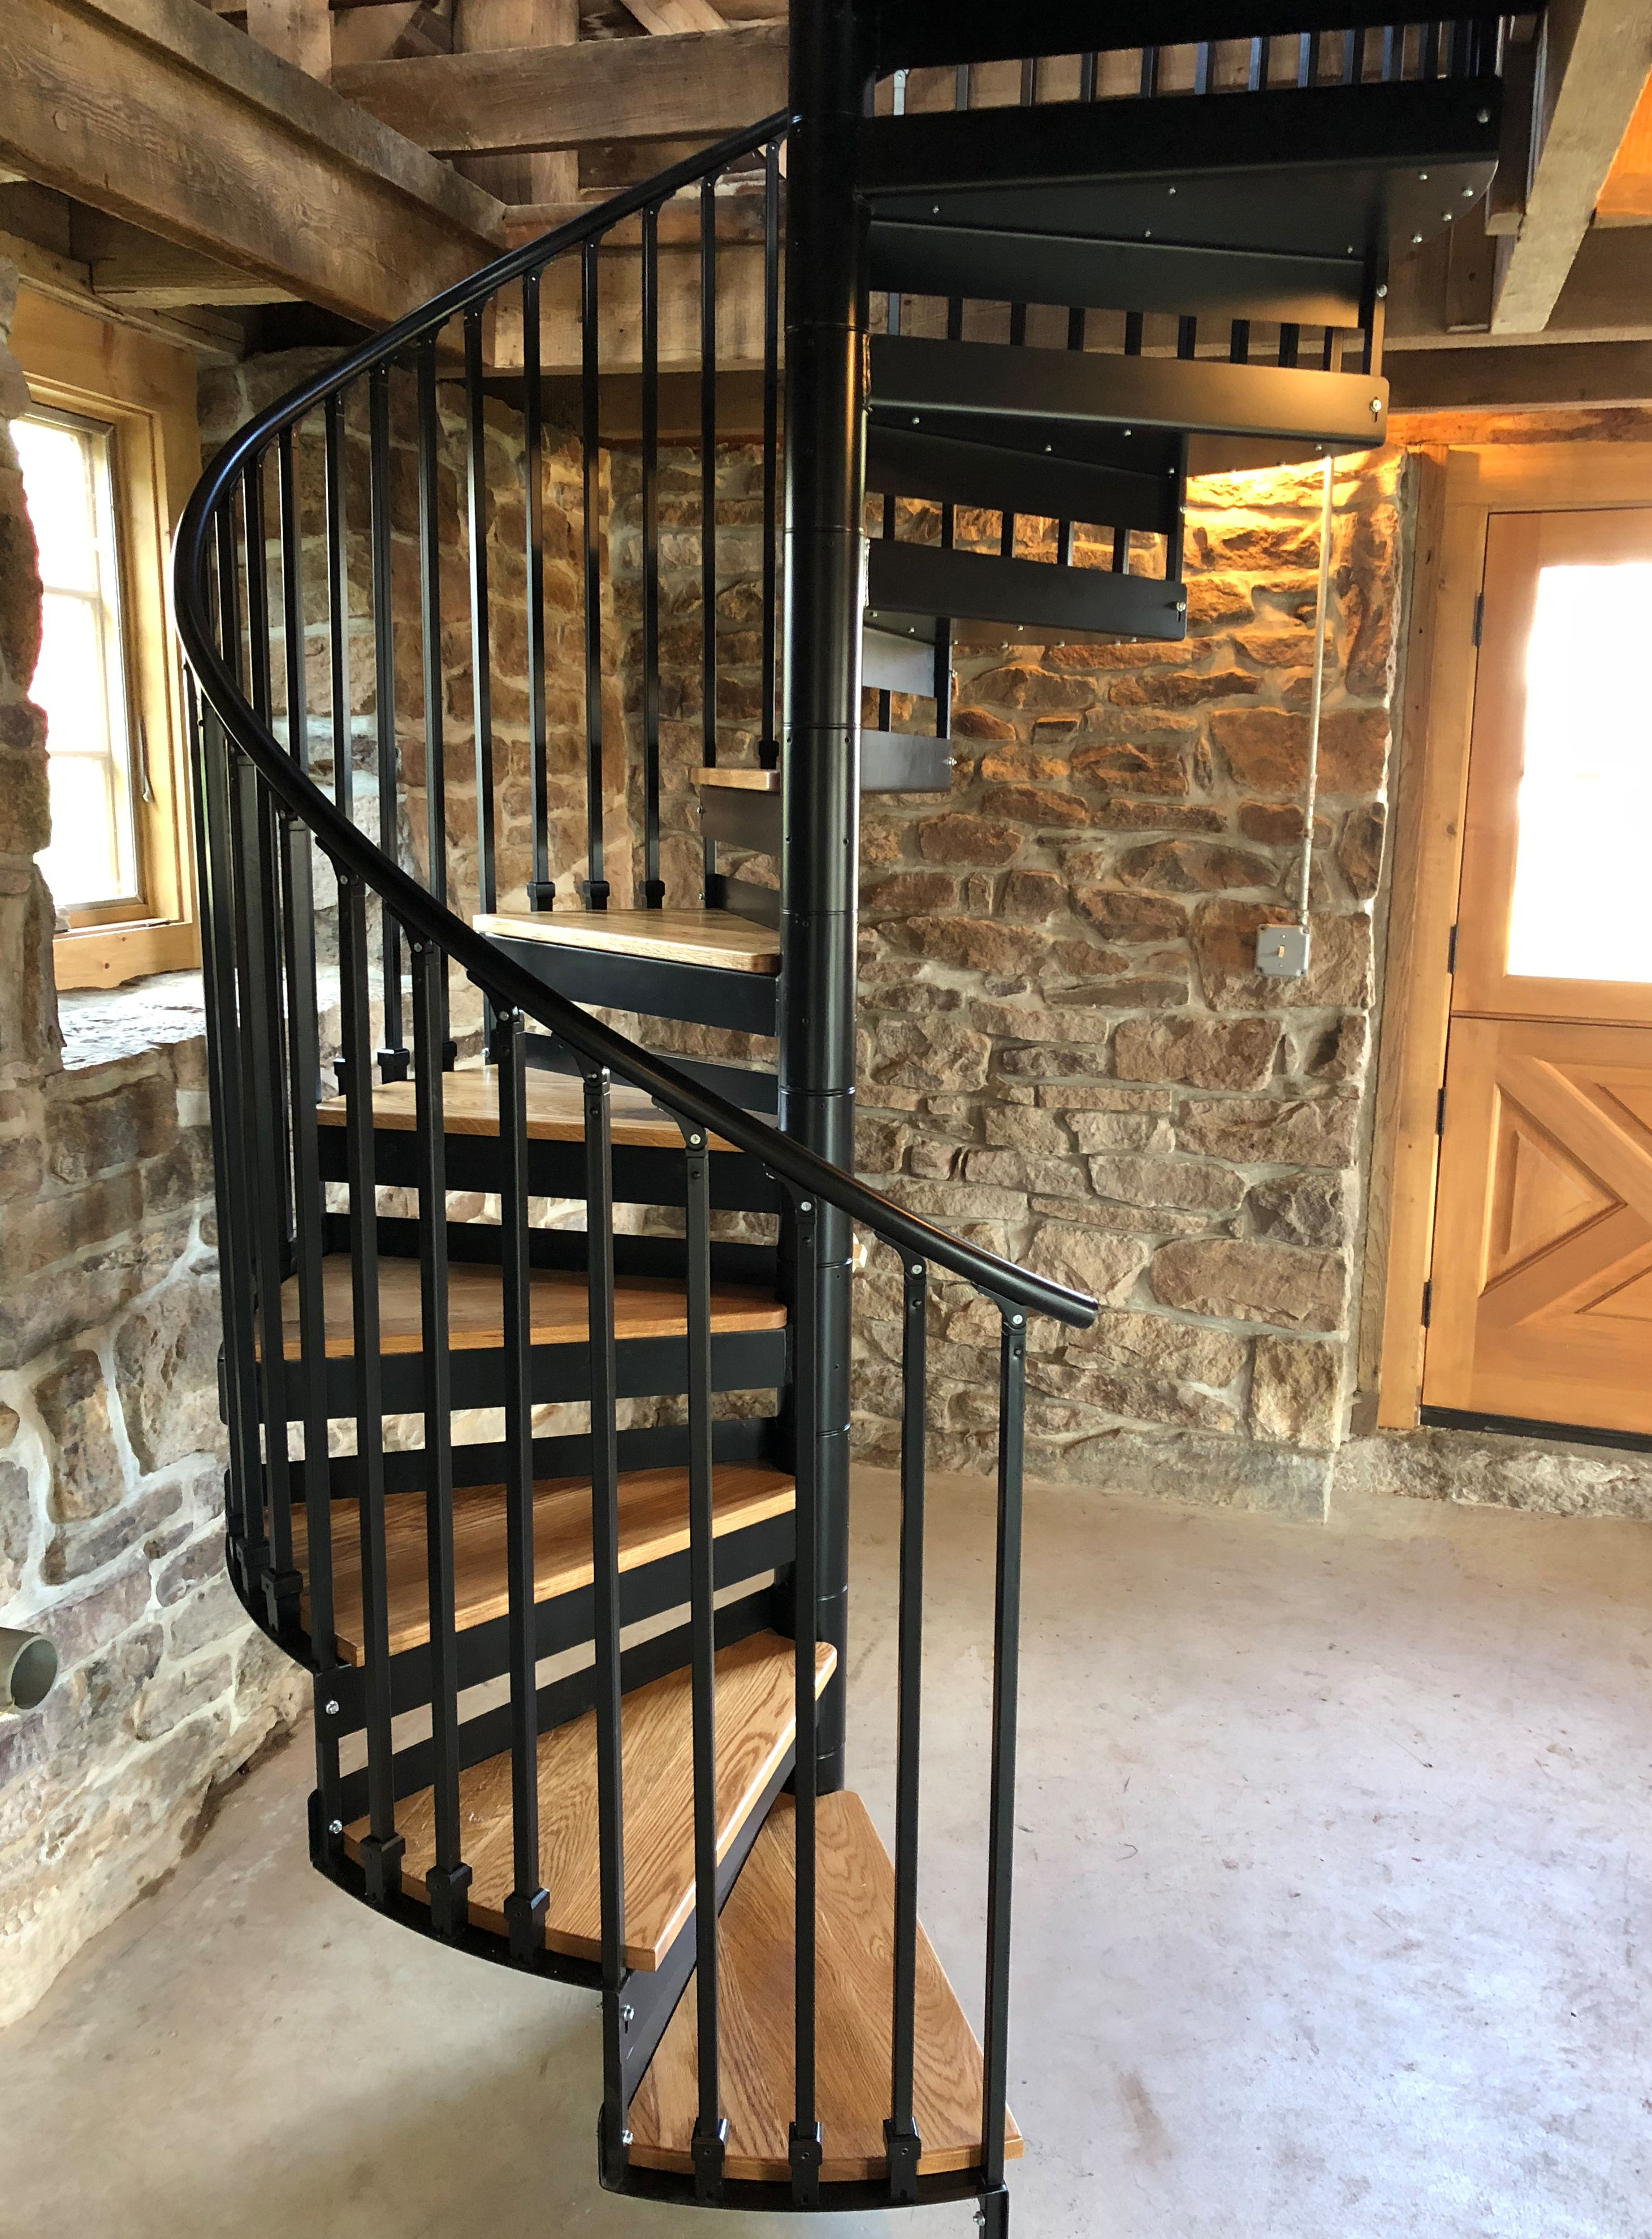 Metal Spiral Staircase Photo Gallery The Iron Shop Spiral Stairs | The Iron Shop Stairs | Staircase Kits | Broomall Pennsylvania | Handrail | Lowes | Stair Railing